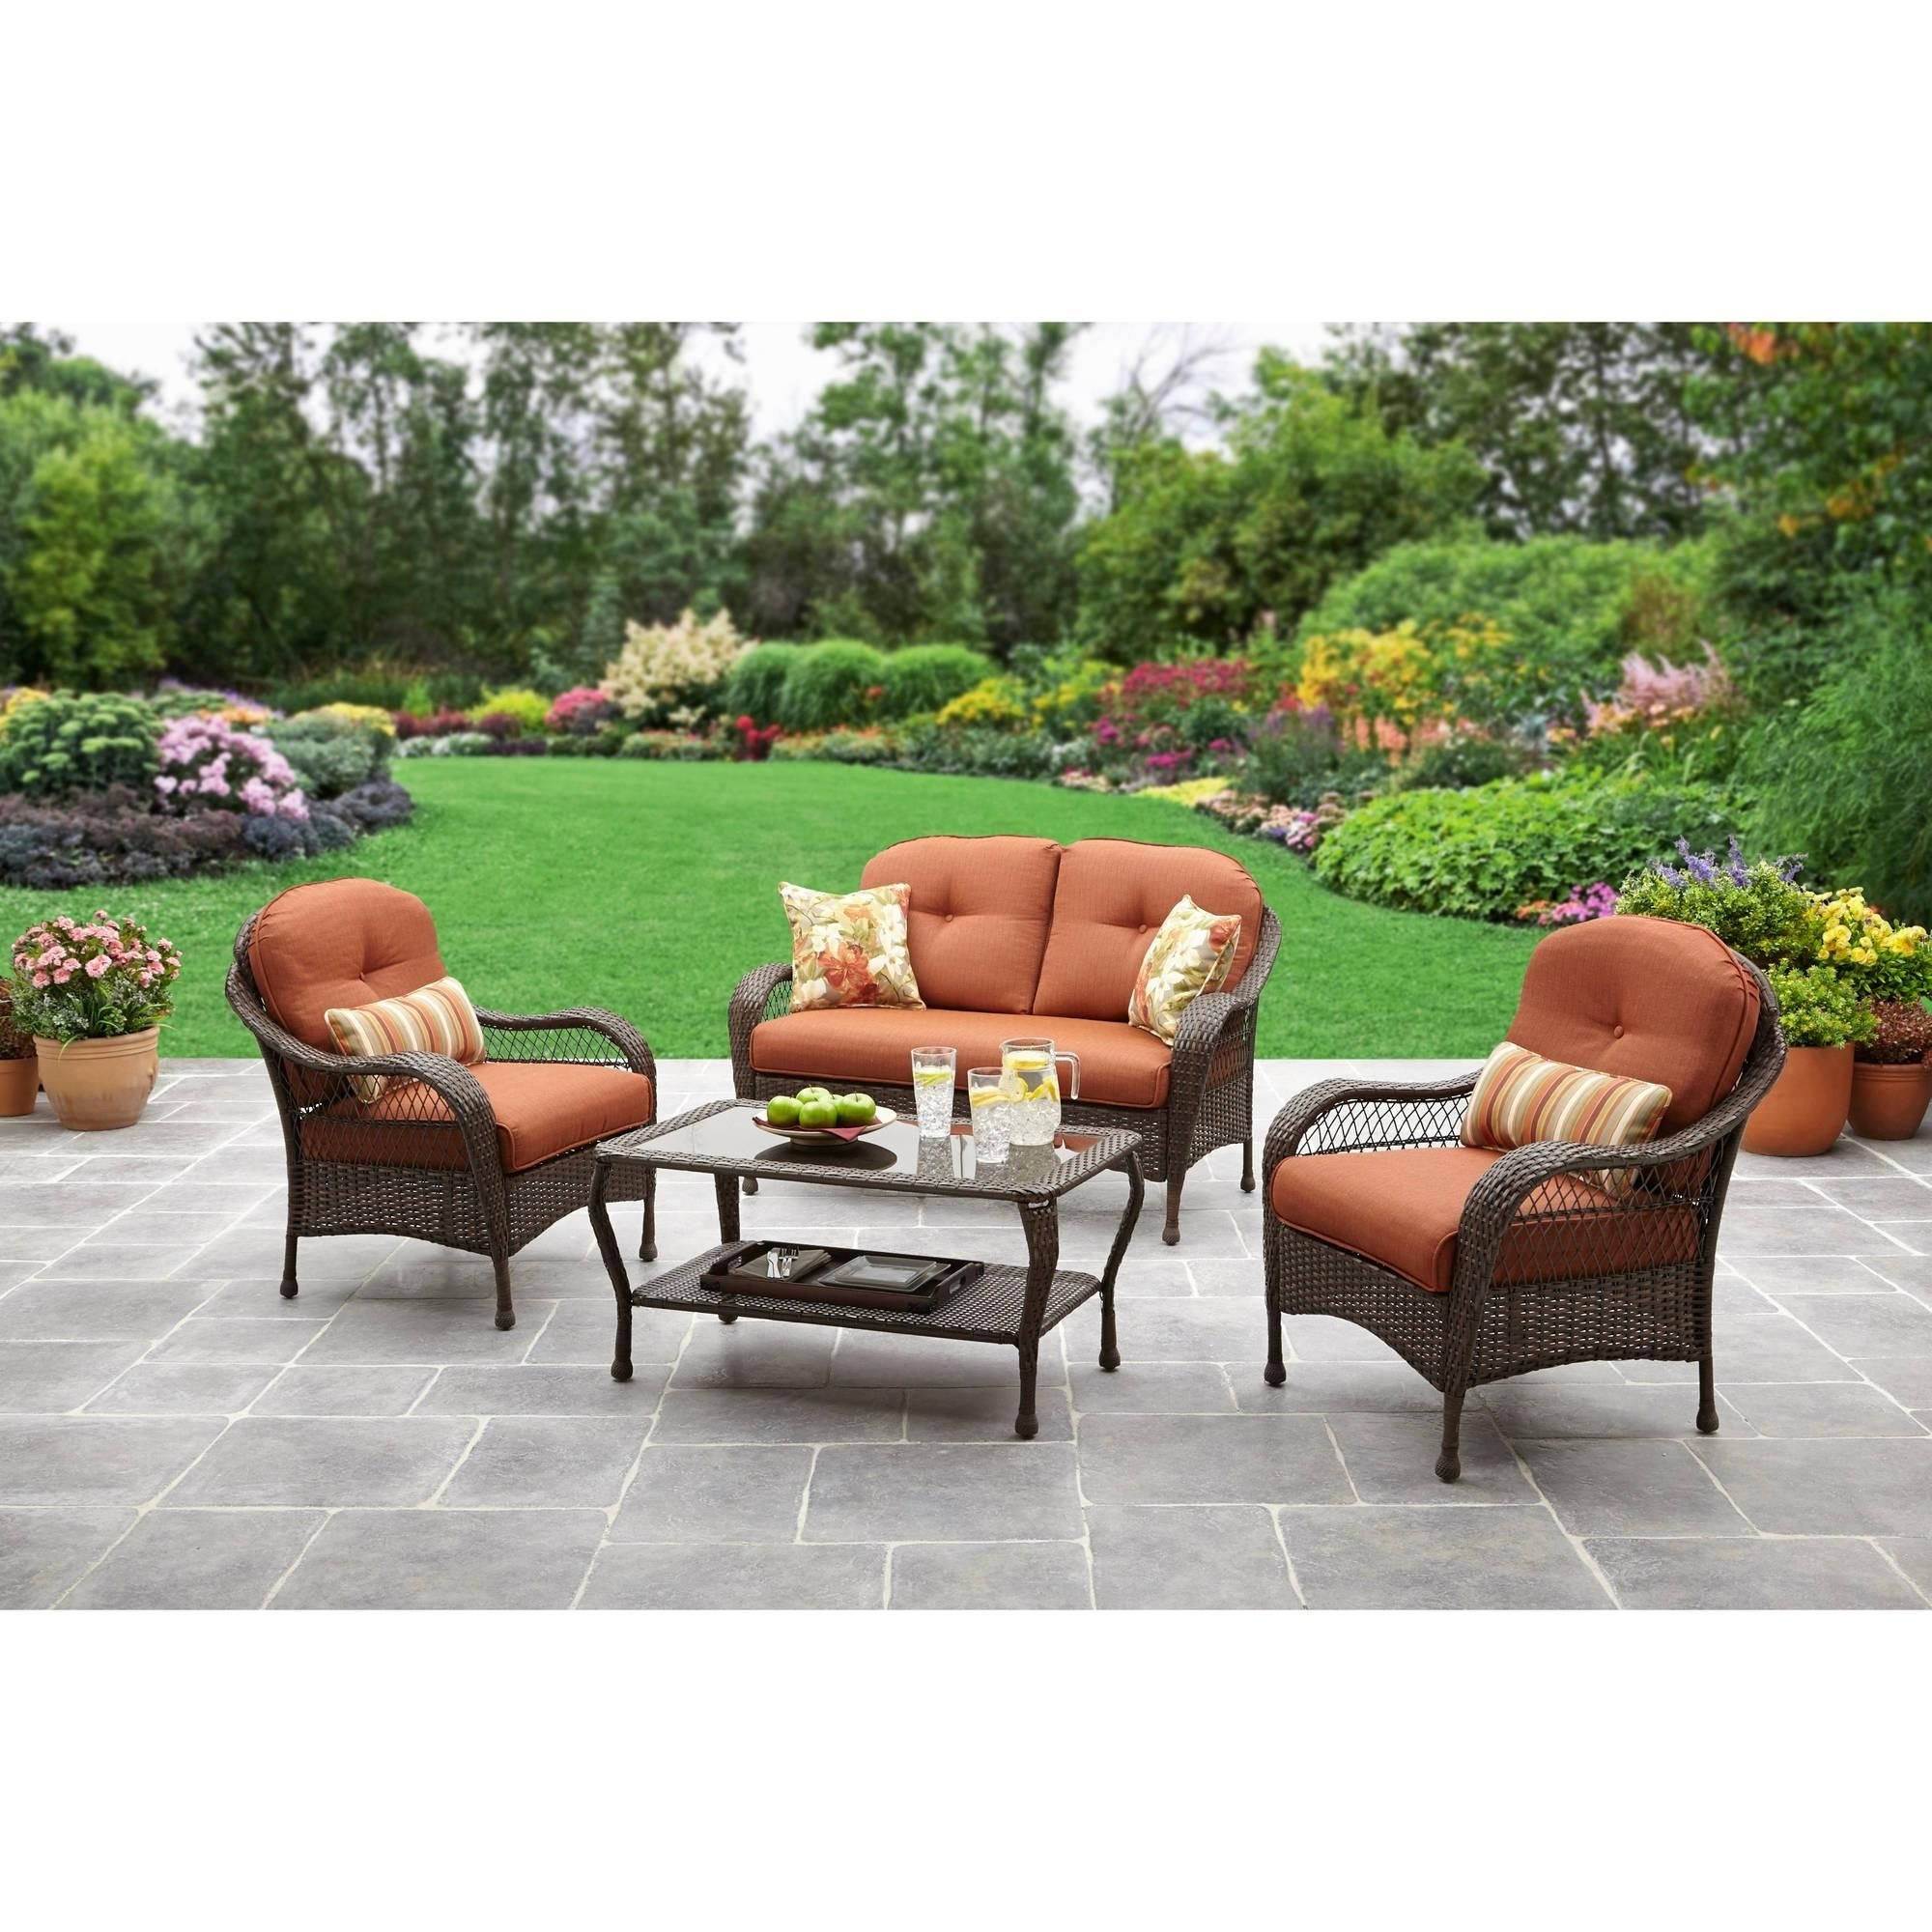 Walmart Patio Furniture Conversation Sets For Most Up To Date Replacement Cushions For Outdoor Furniture Walmart – Best Spray (View 10 of 15)